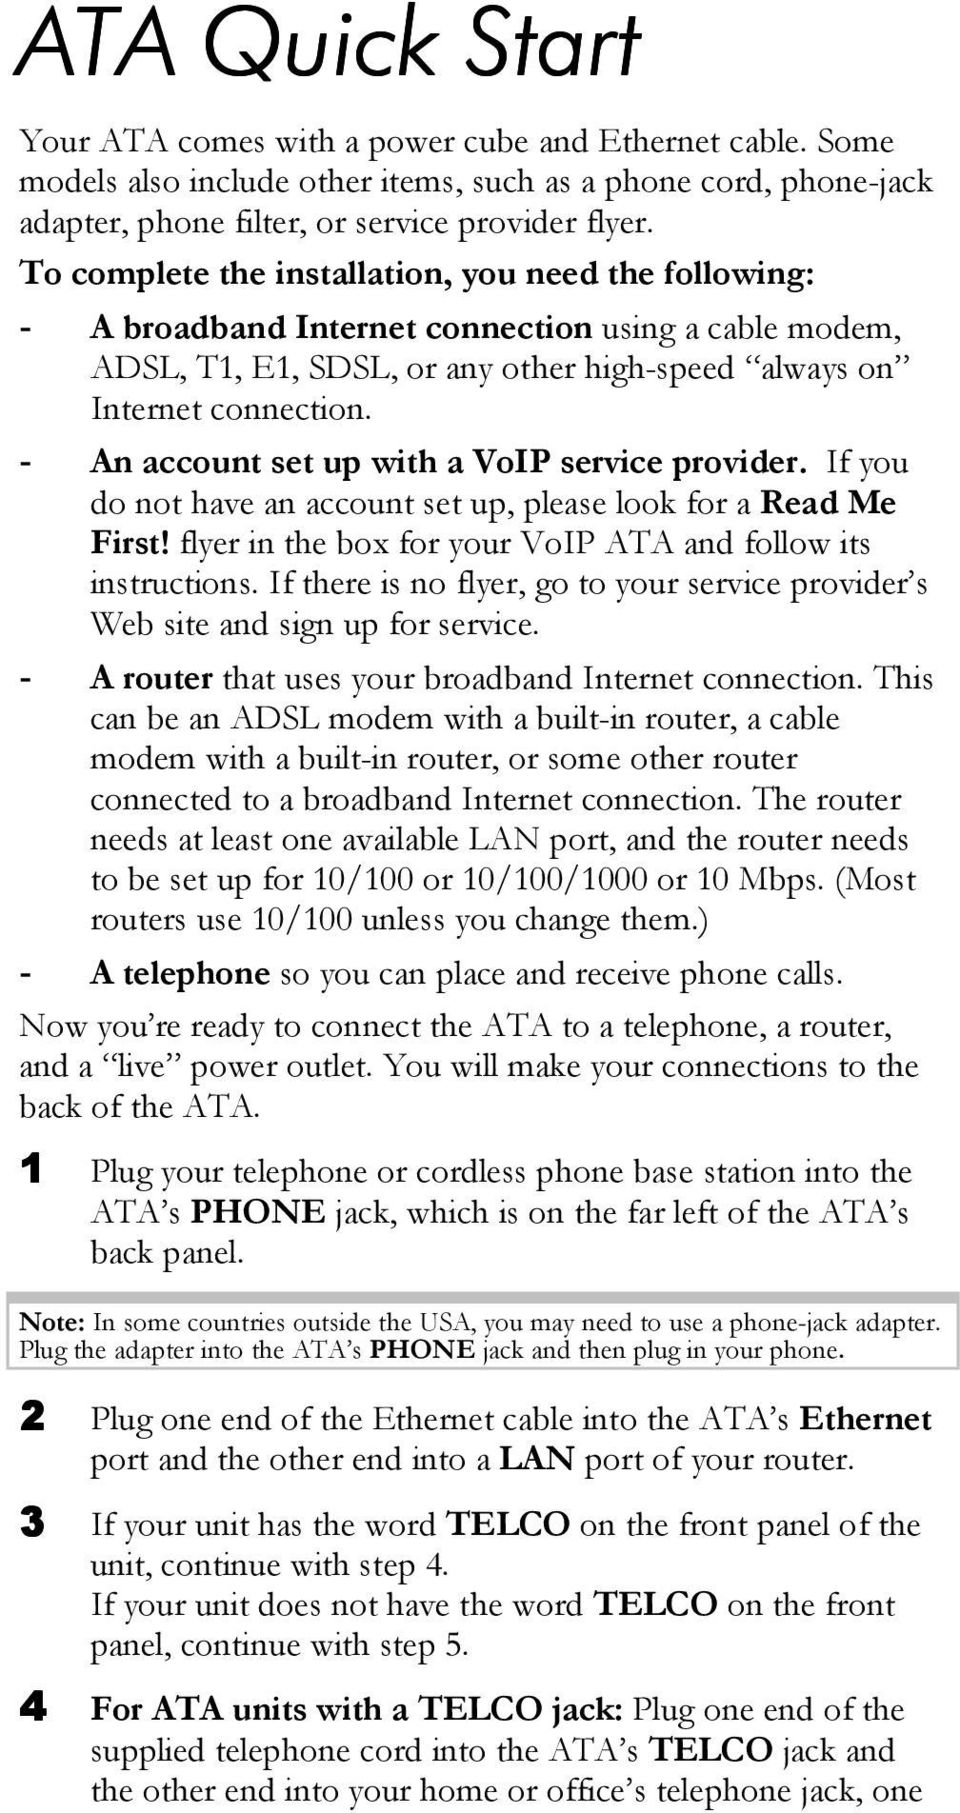 - An account set up with a VoIP service provider. If you do not have an account set up, please look for a Read Me First! flyer in the box for your VoIP ATA and follow its instructions.